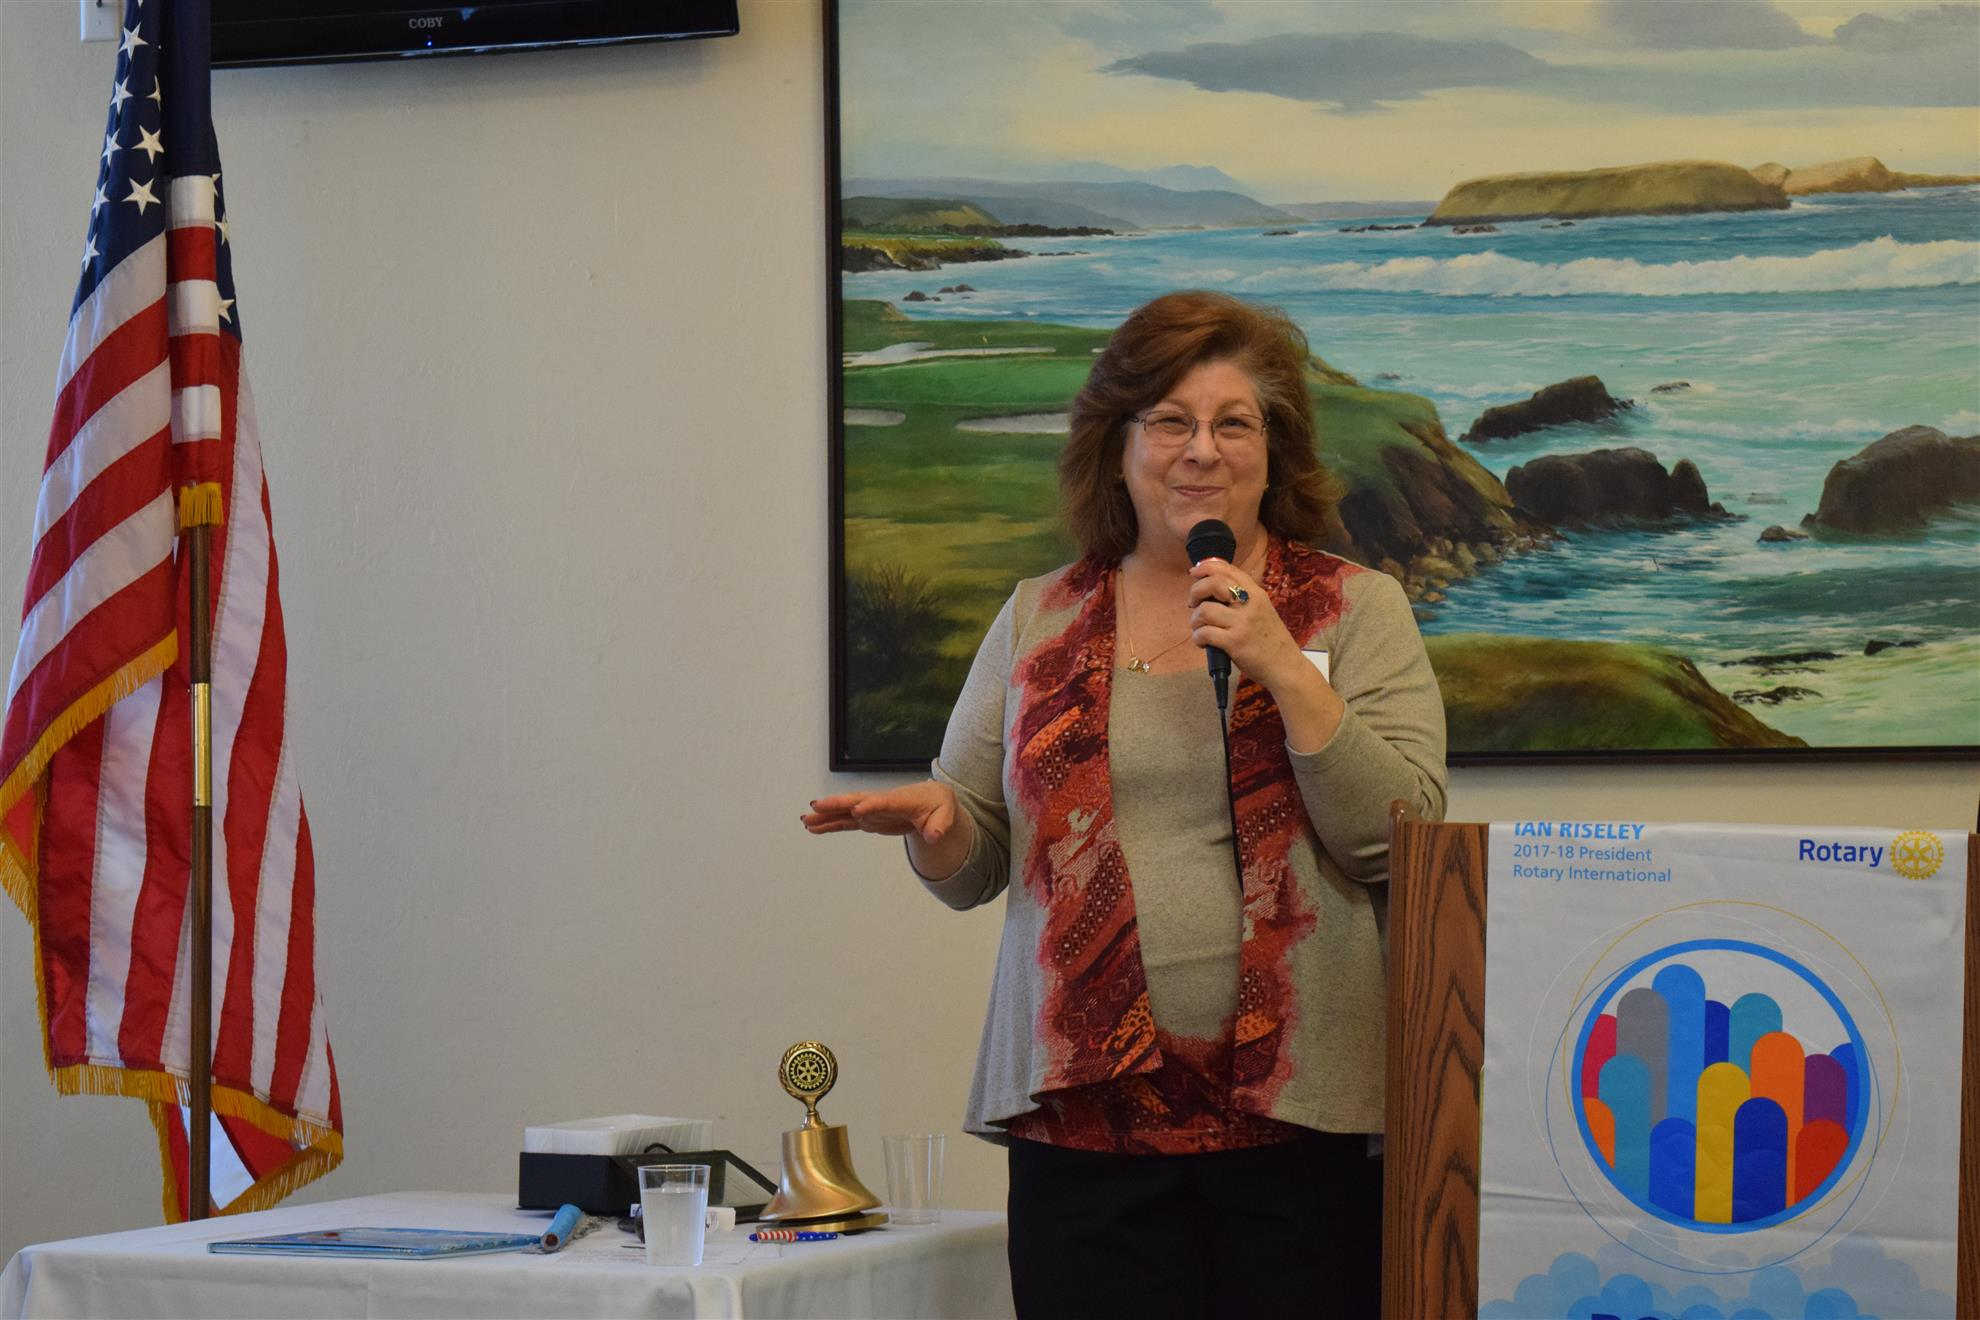 Karen Russell speaks about conflict resolution in the workplace